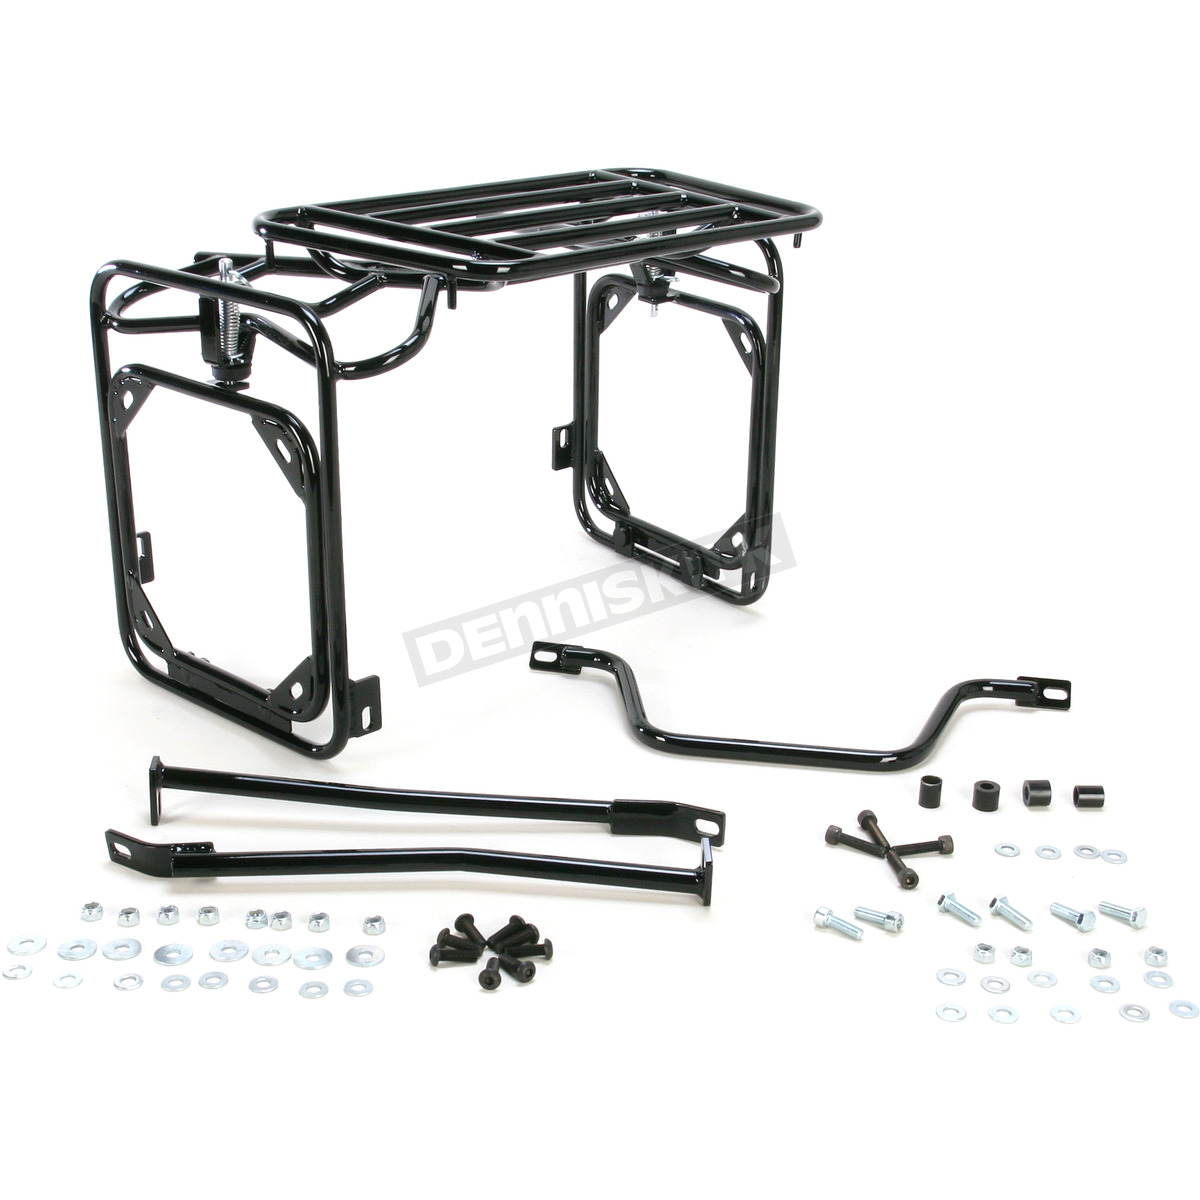 Moose Expedition Luggage Rack System